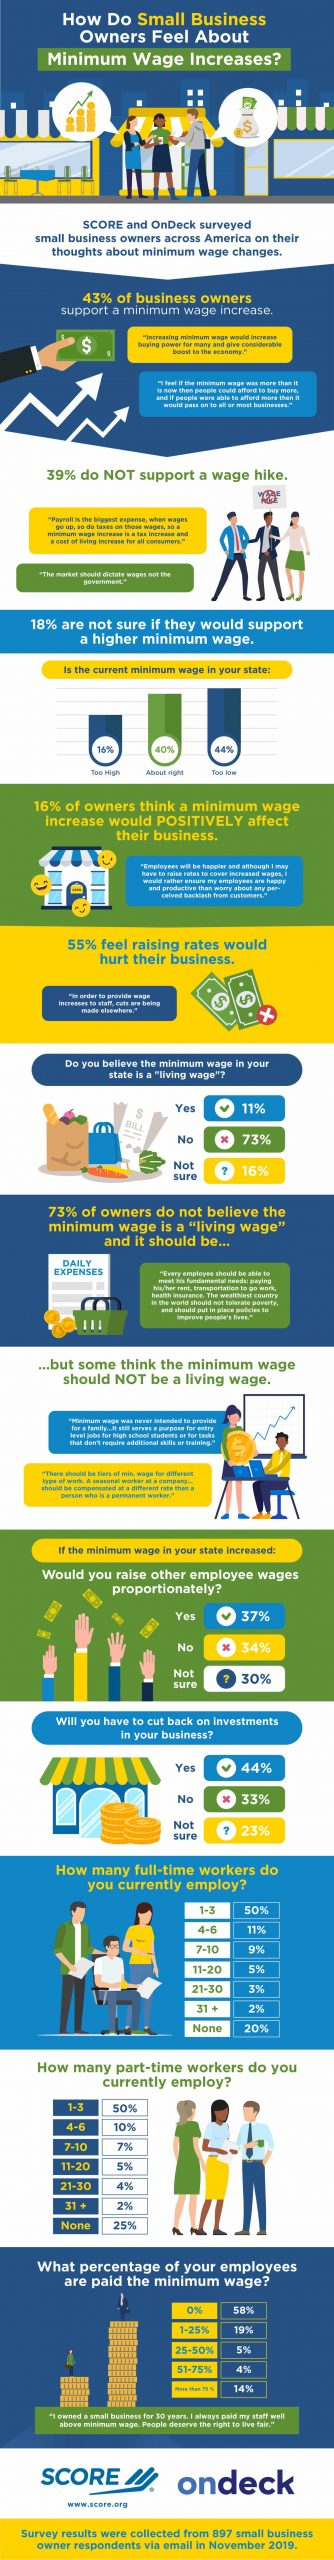 Minimum Wage Increase Statistics